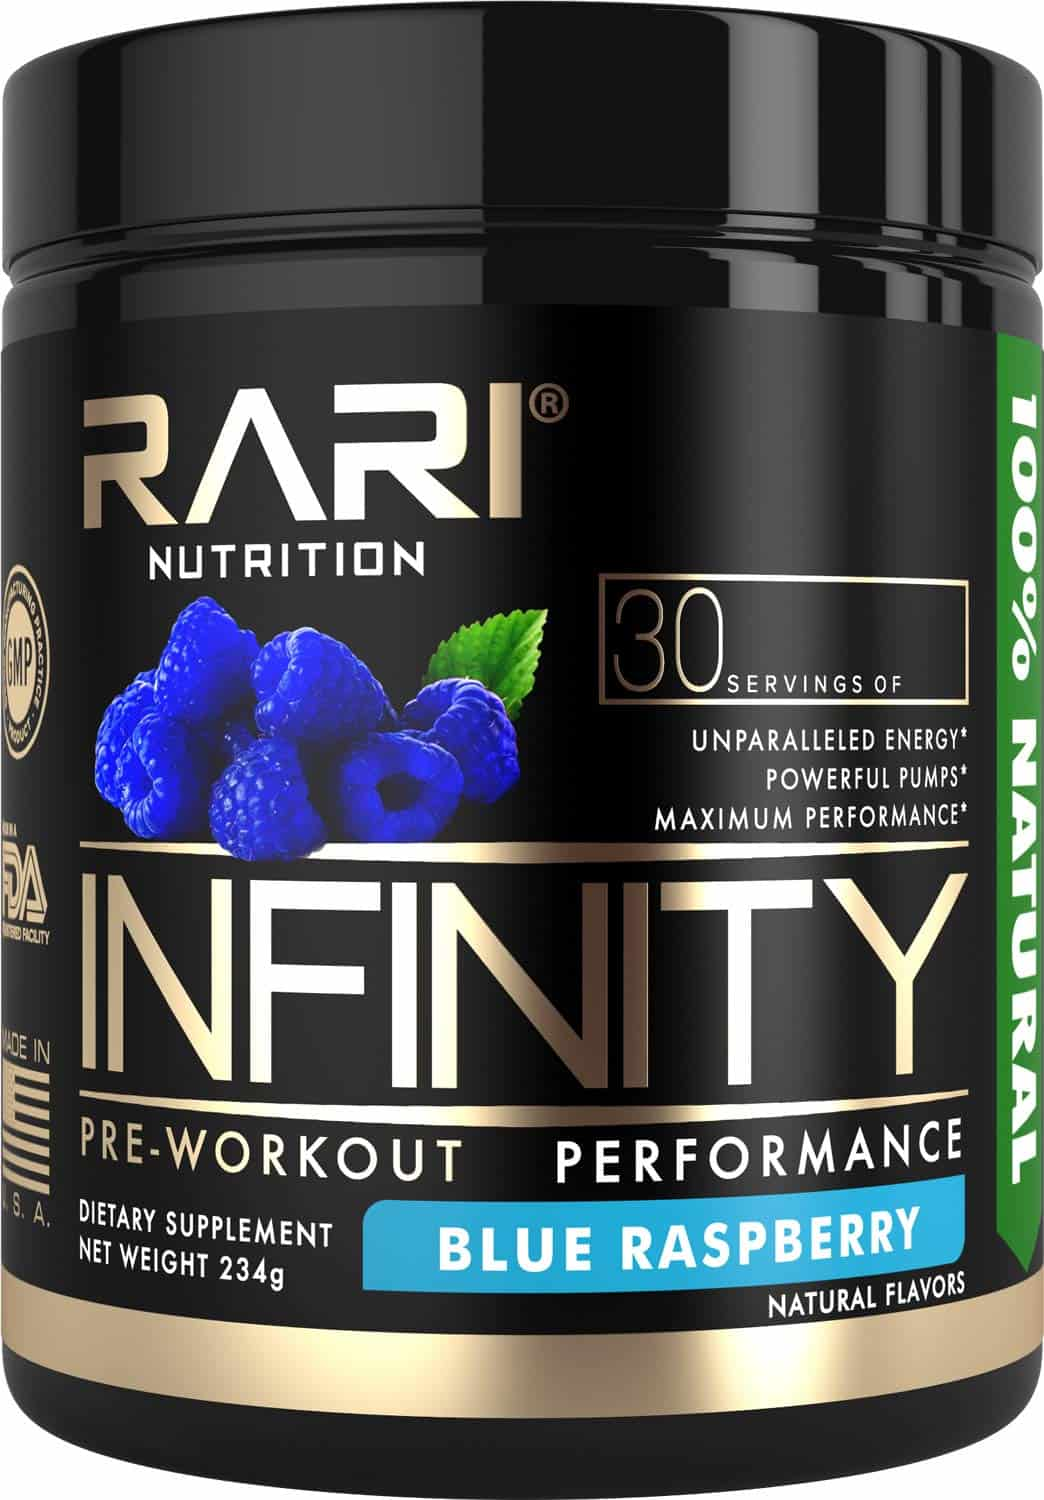 RARI Nutrition - Infinity Pre-Workout Powder